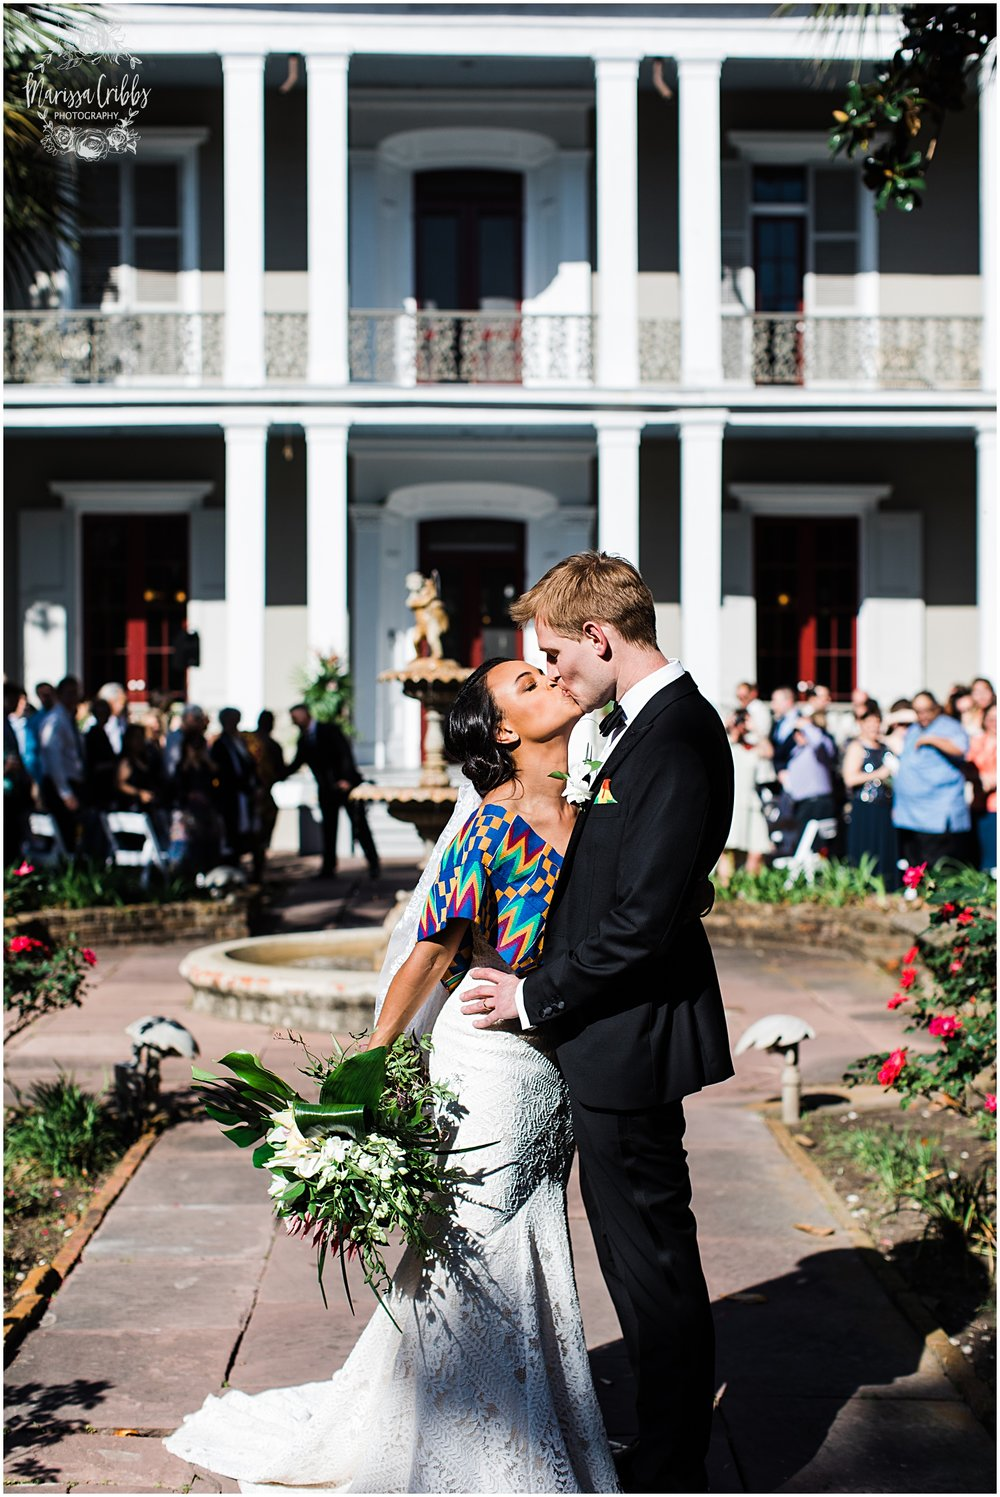 NOLA WEDDING | SARAH & MICHAEL | MARISSA CRIBBS PHOTOGRAPHY_4368.jpg